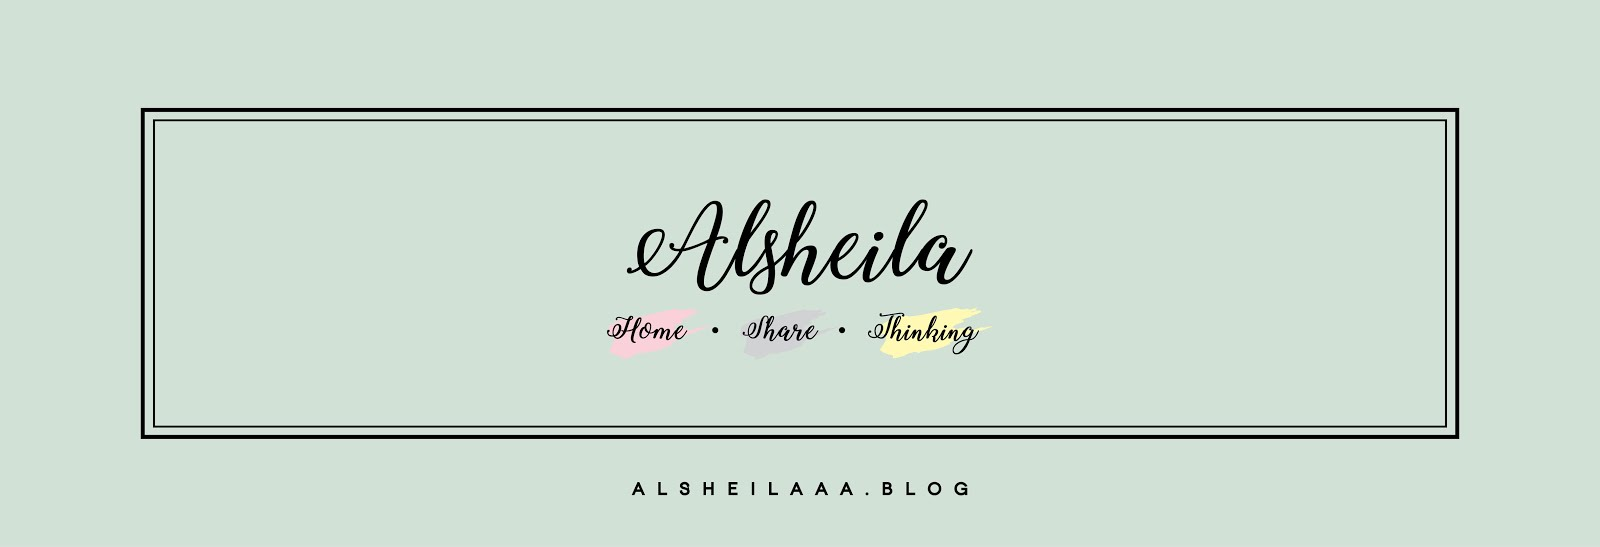 Alsheila's Digital Journal